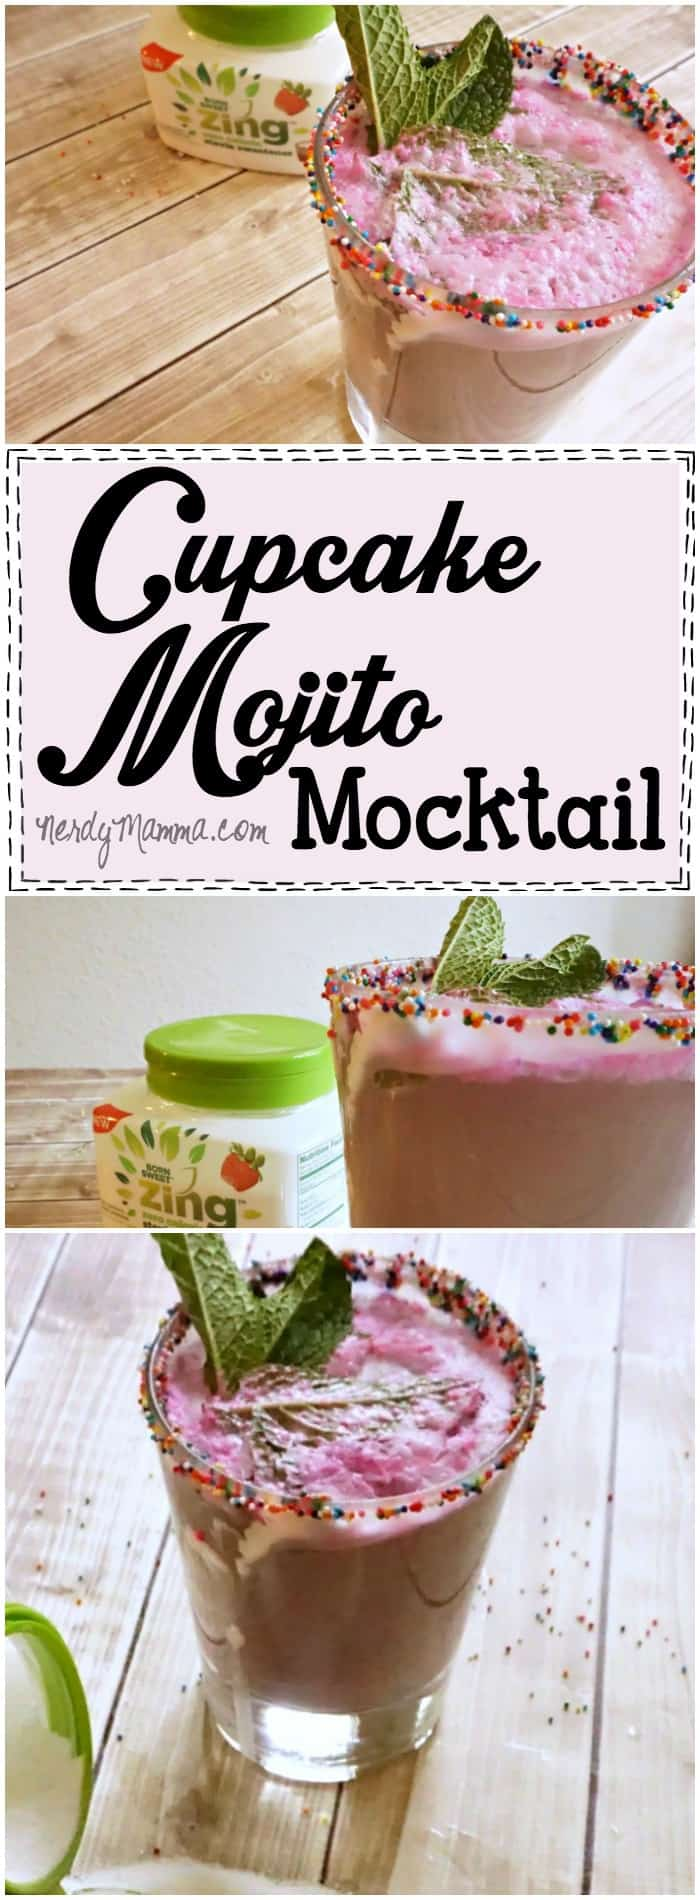 I love this Cupcake Mojito Mocktail! What an easy way to jazz-up a boring evening. LOL!